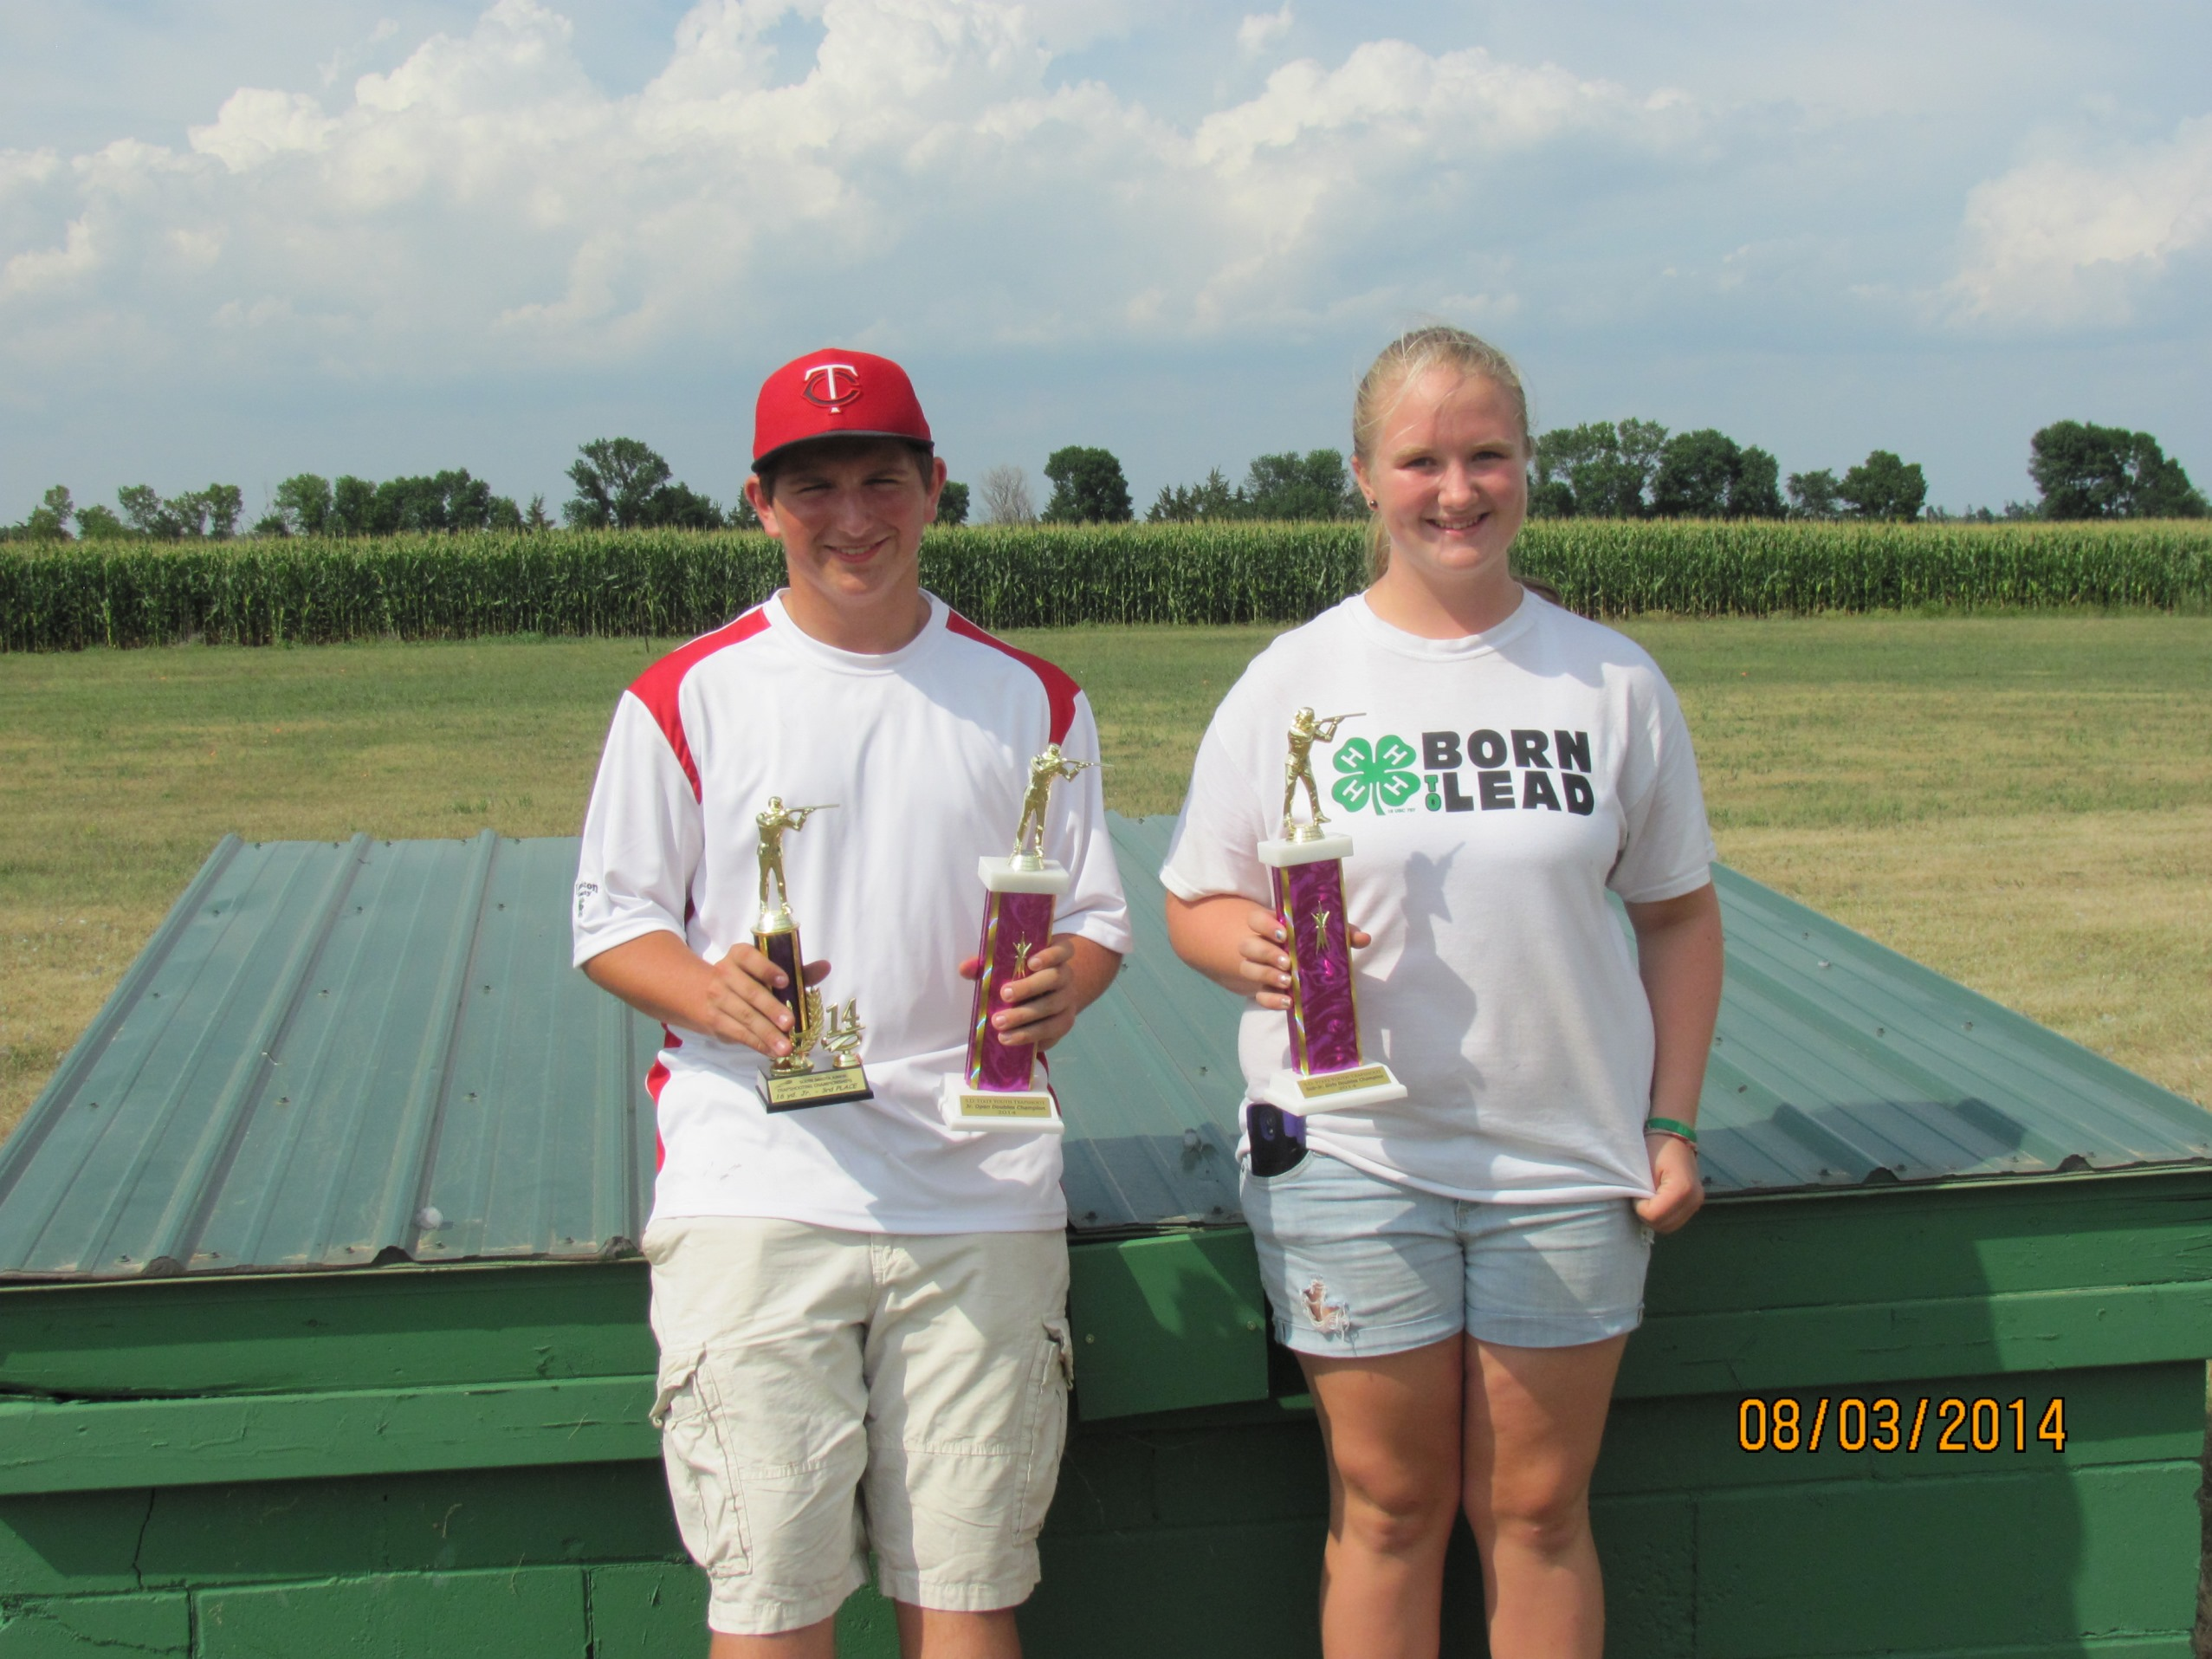 Nathan and Shelbi with trophies Aug 2014